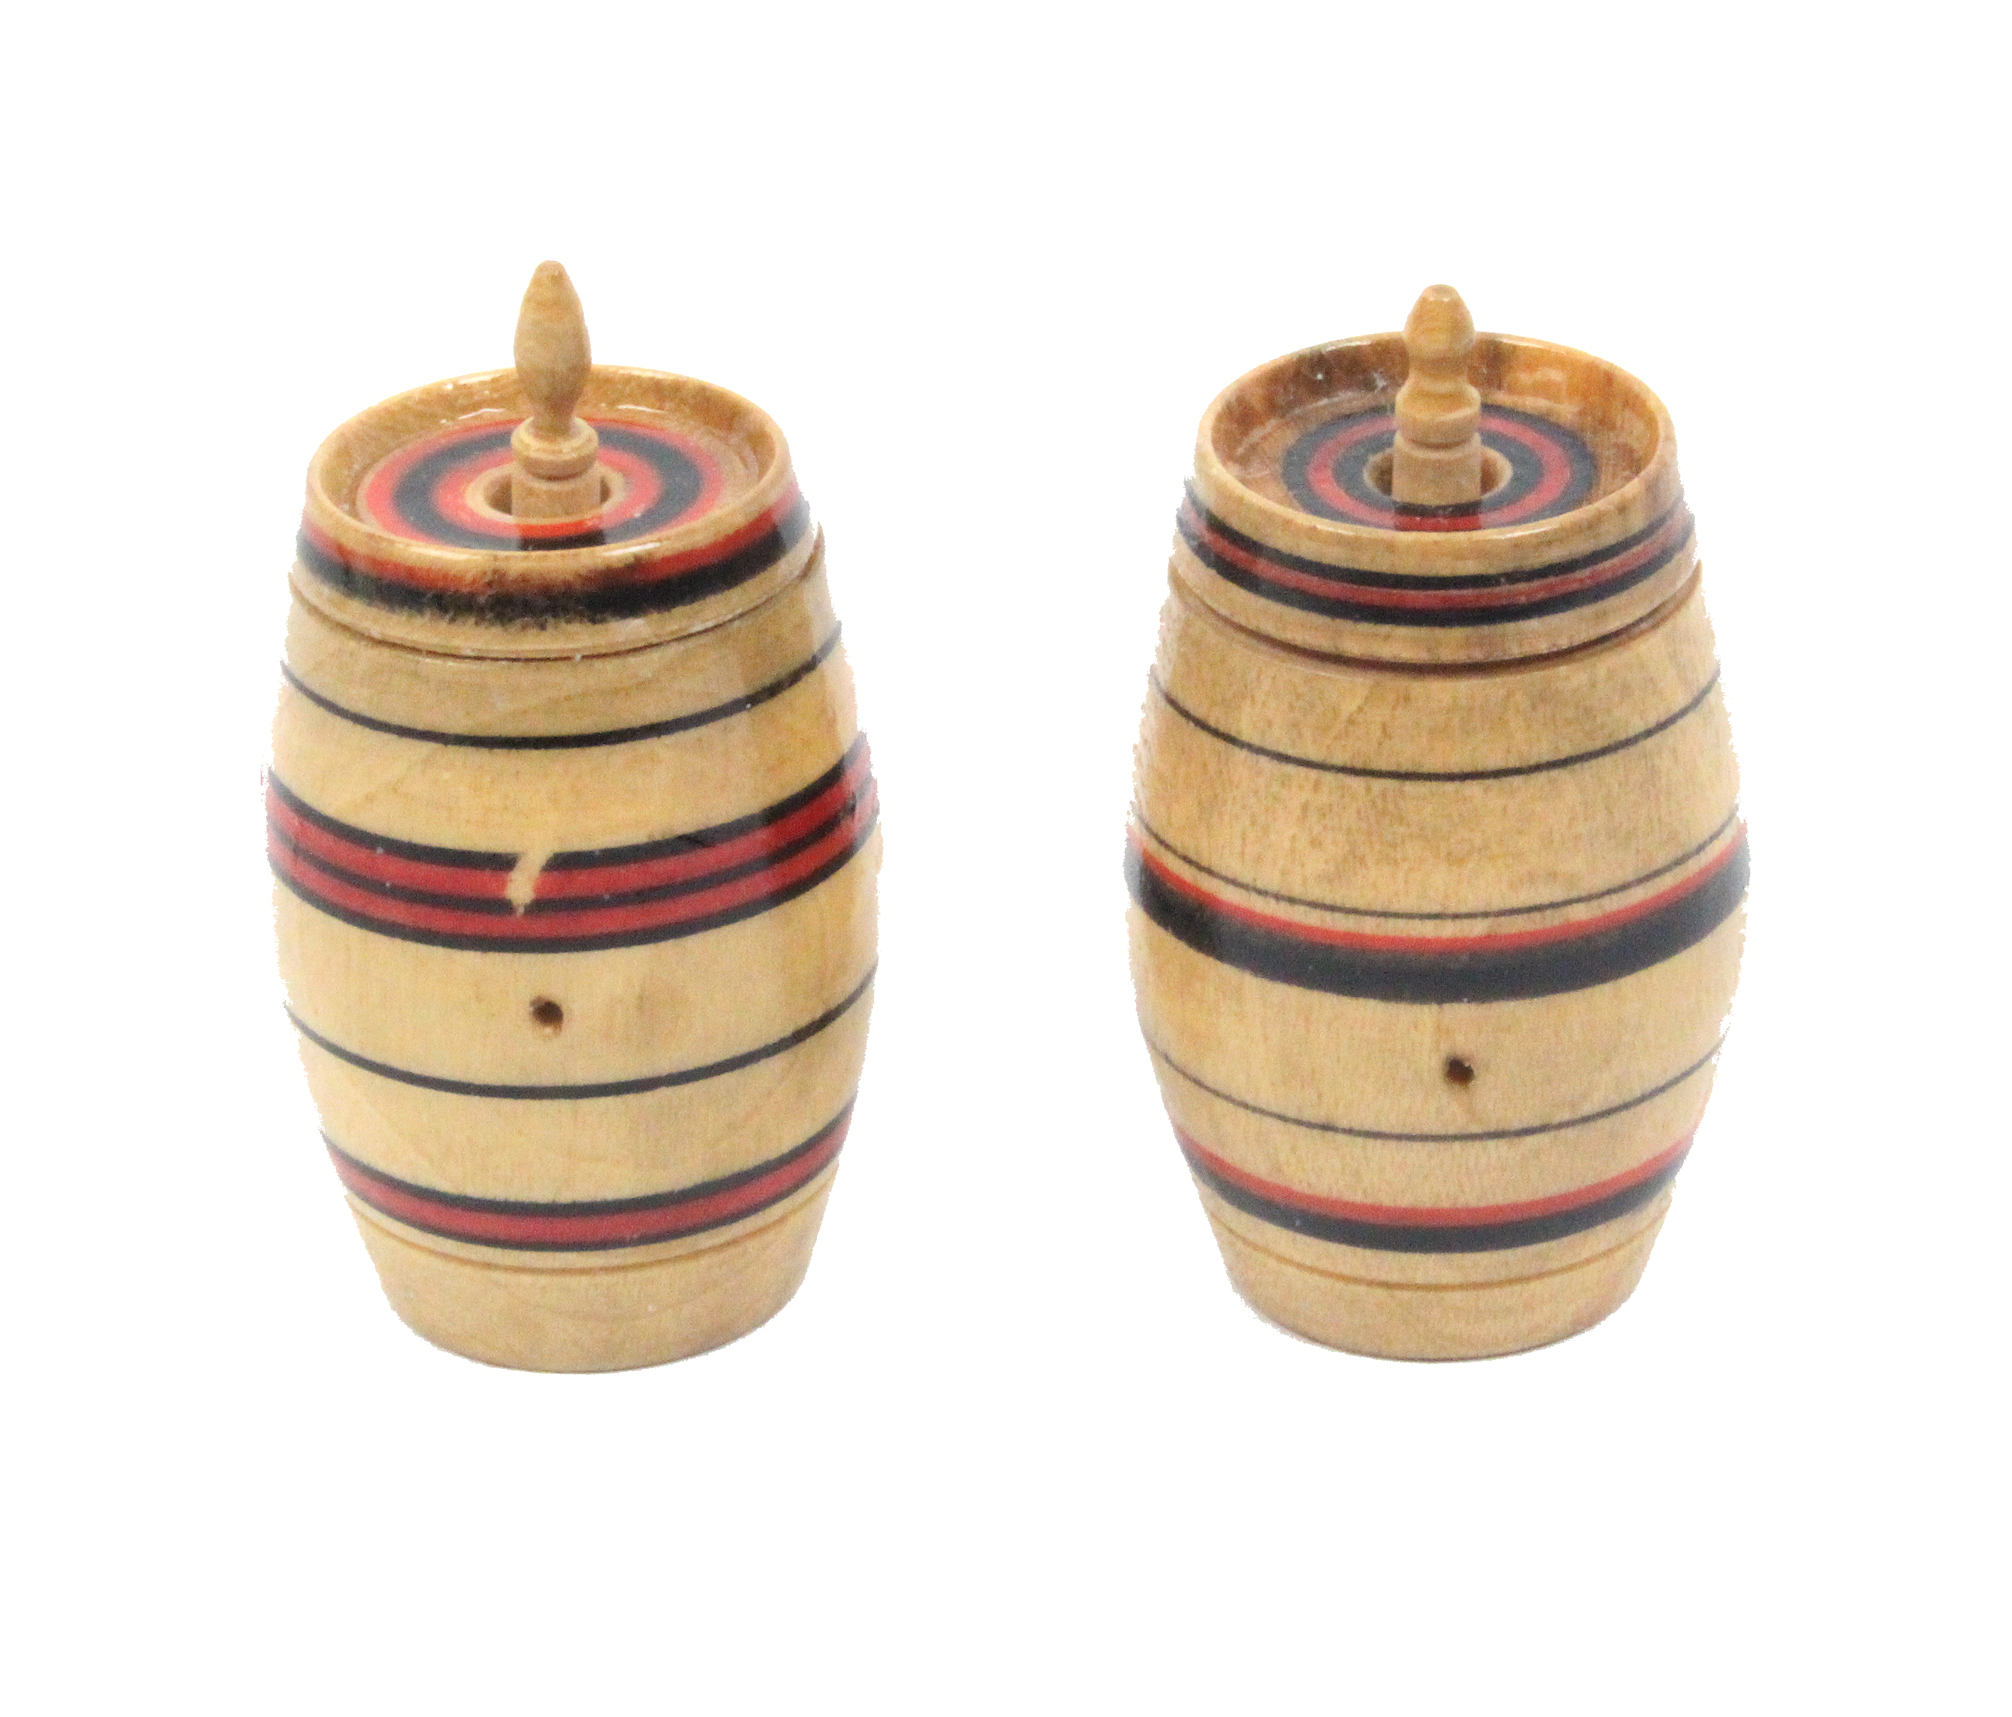 Lot 10 - Two painted Tunbridge ware cotton barrels with red and black ring turned decoration, each 4.2cm high